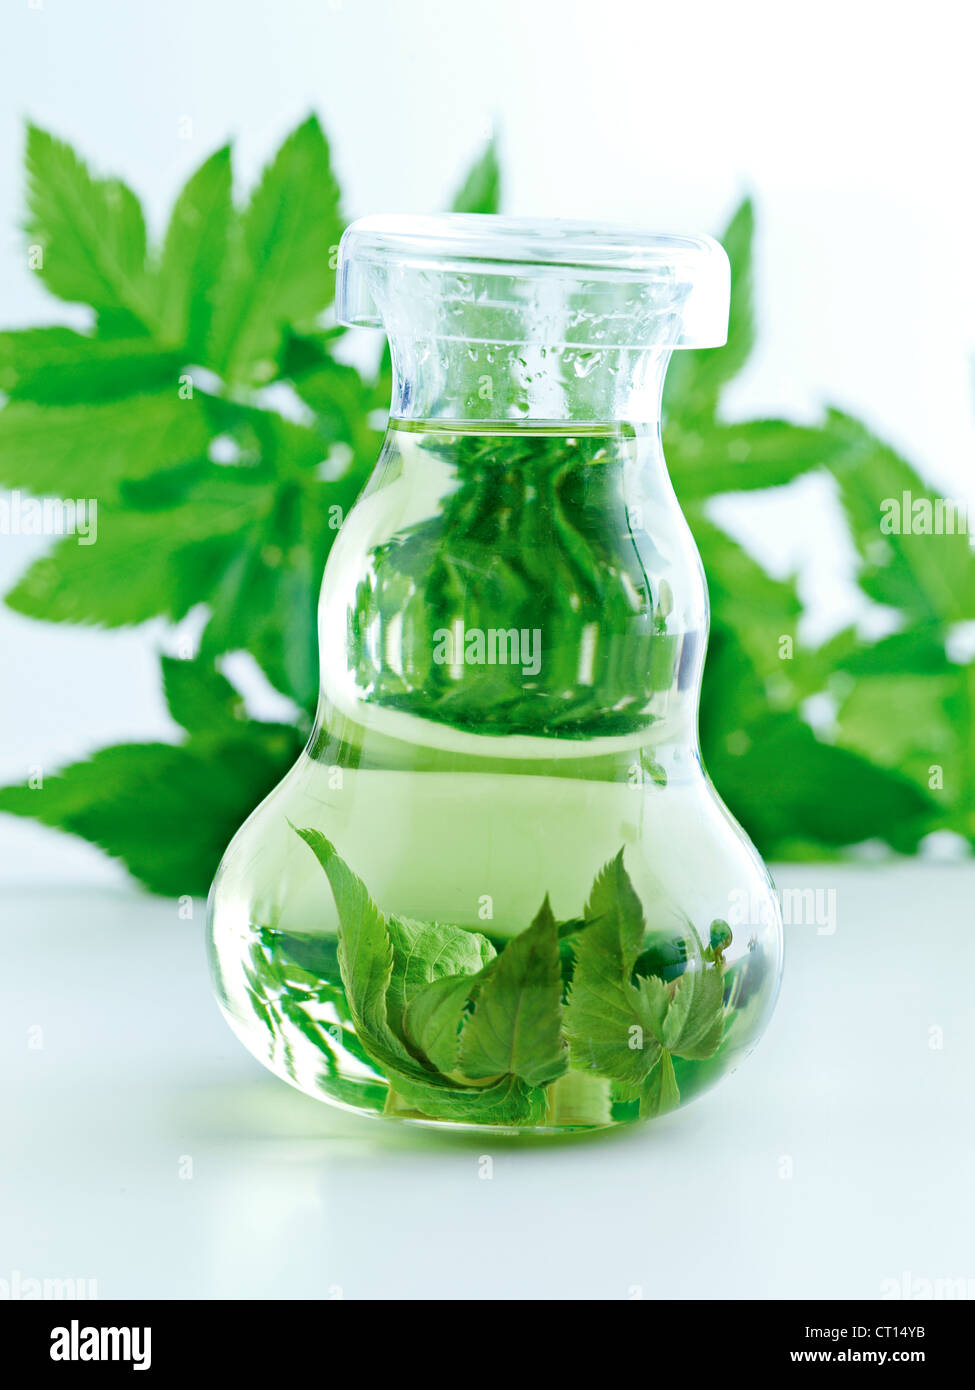 Bottle of herbs in water - Stock Image